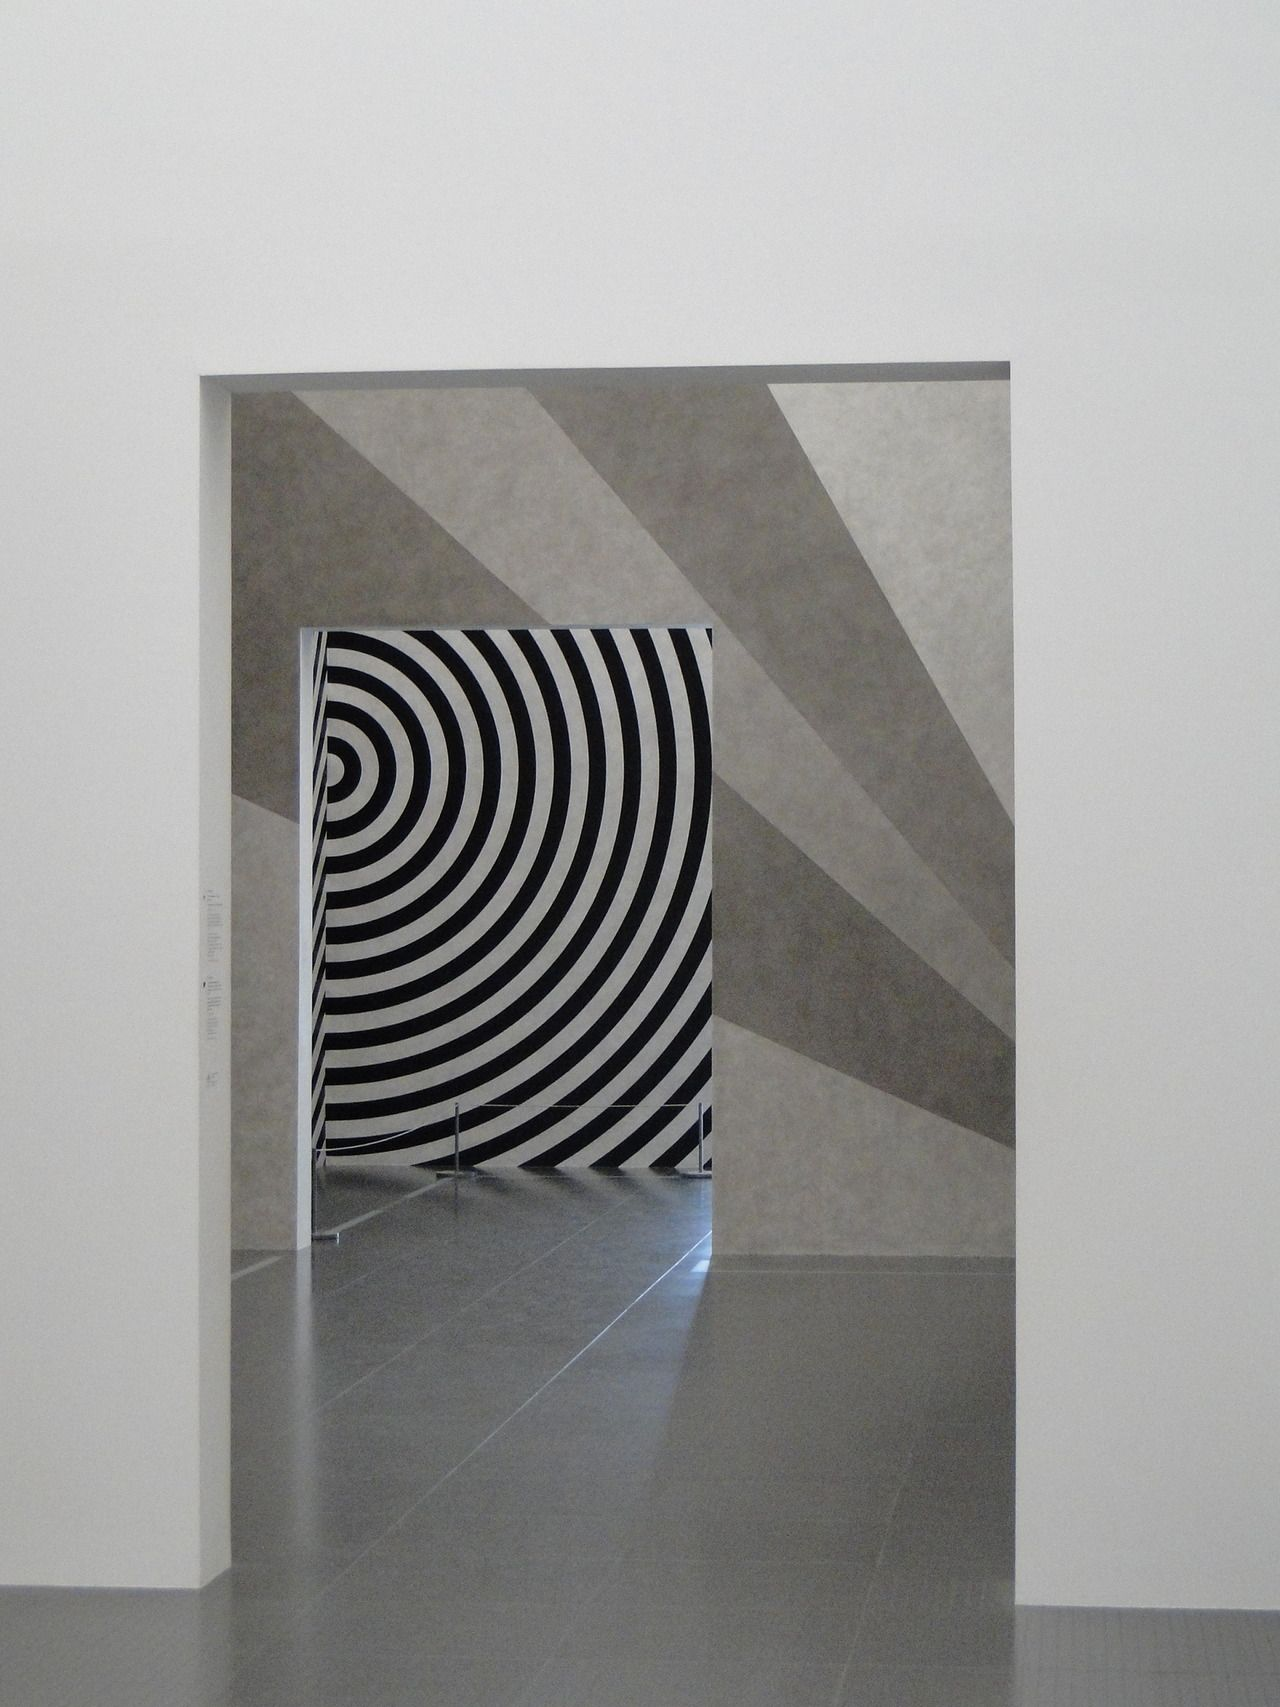 Sol LeWitt, Wall Drawings from 1968-2007 currently on view at The Centre Pompidou-Metz.